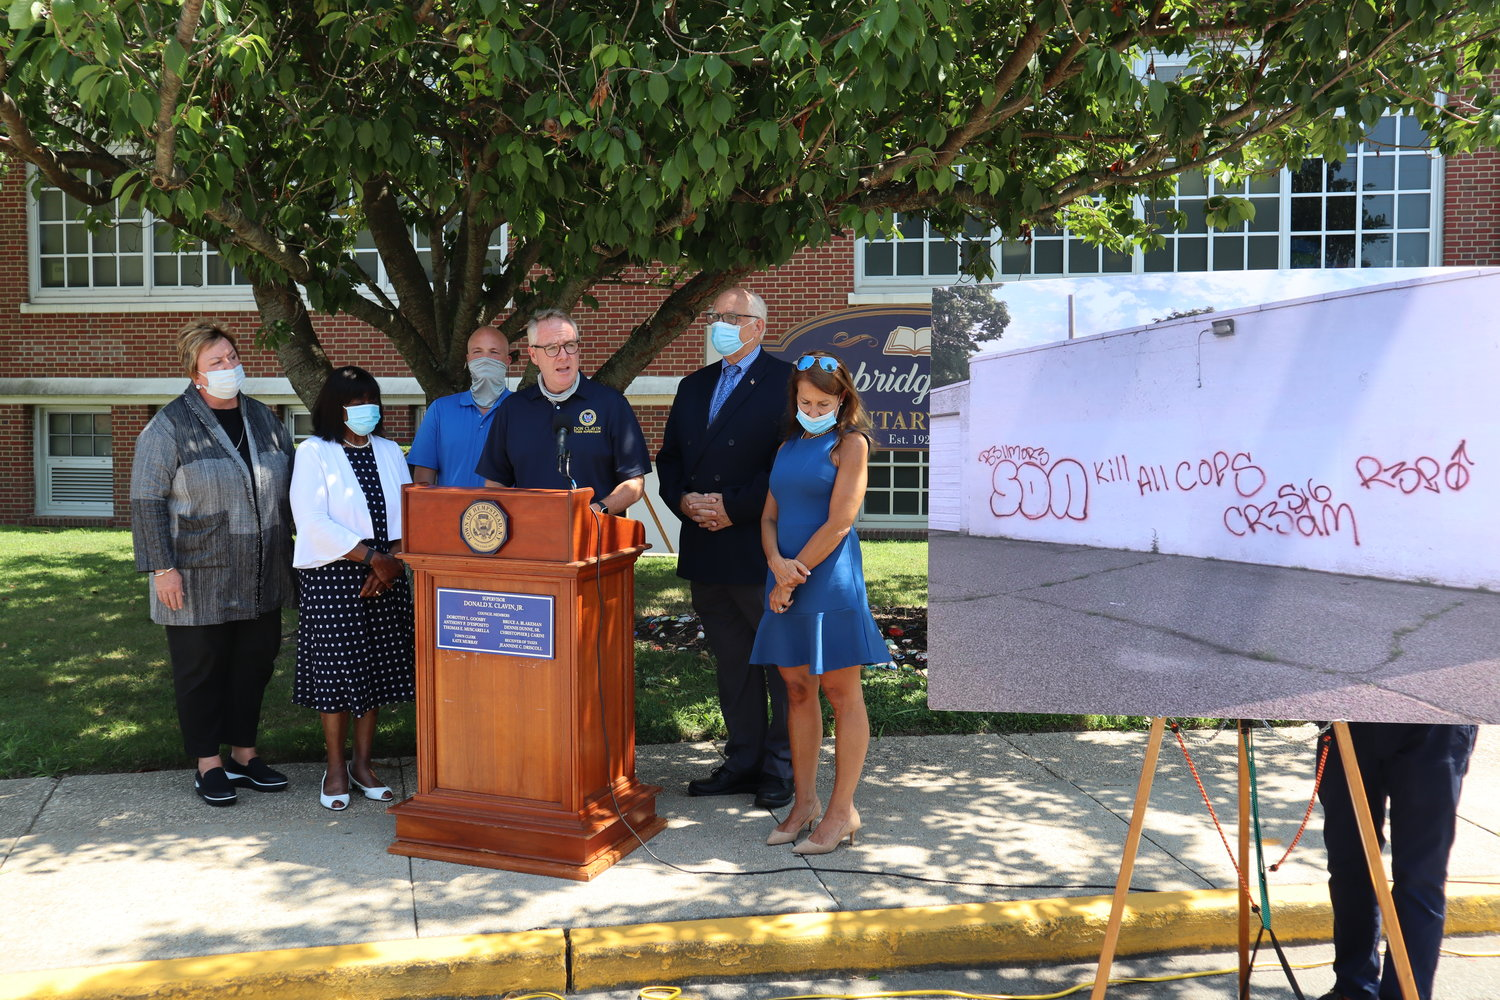 Town Board members gathered at Newbridge Road Elementary School on Monday to condemn the recent spate of graffiti. From left are District Clerk Kate Murray, Sr. Councilwoman Dorothy Goosby, Councilman Chris Carini, Supervisor Don Clavin, Councilman Dennis Dunne and Receiver of Taxes Jeanine Driscoll.